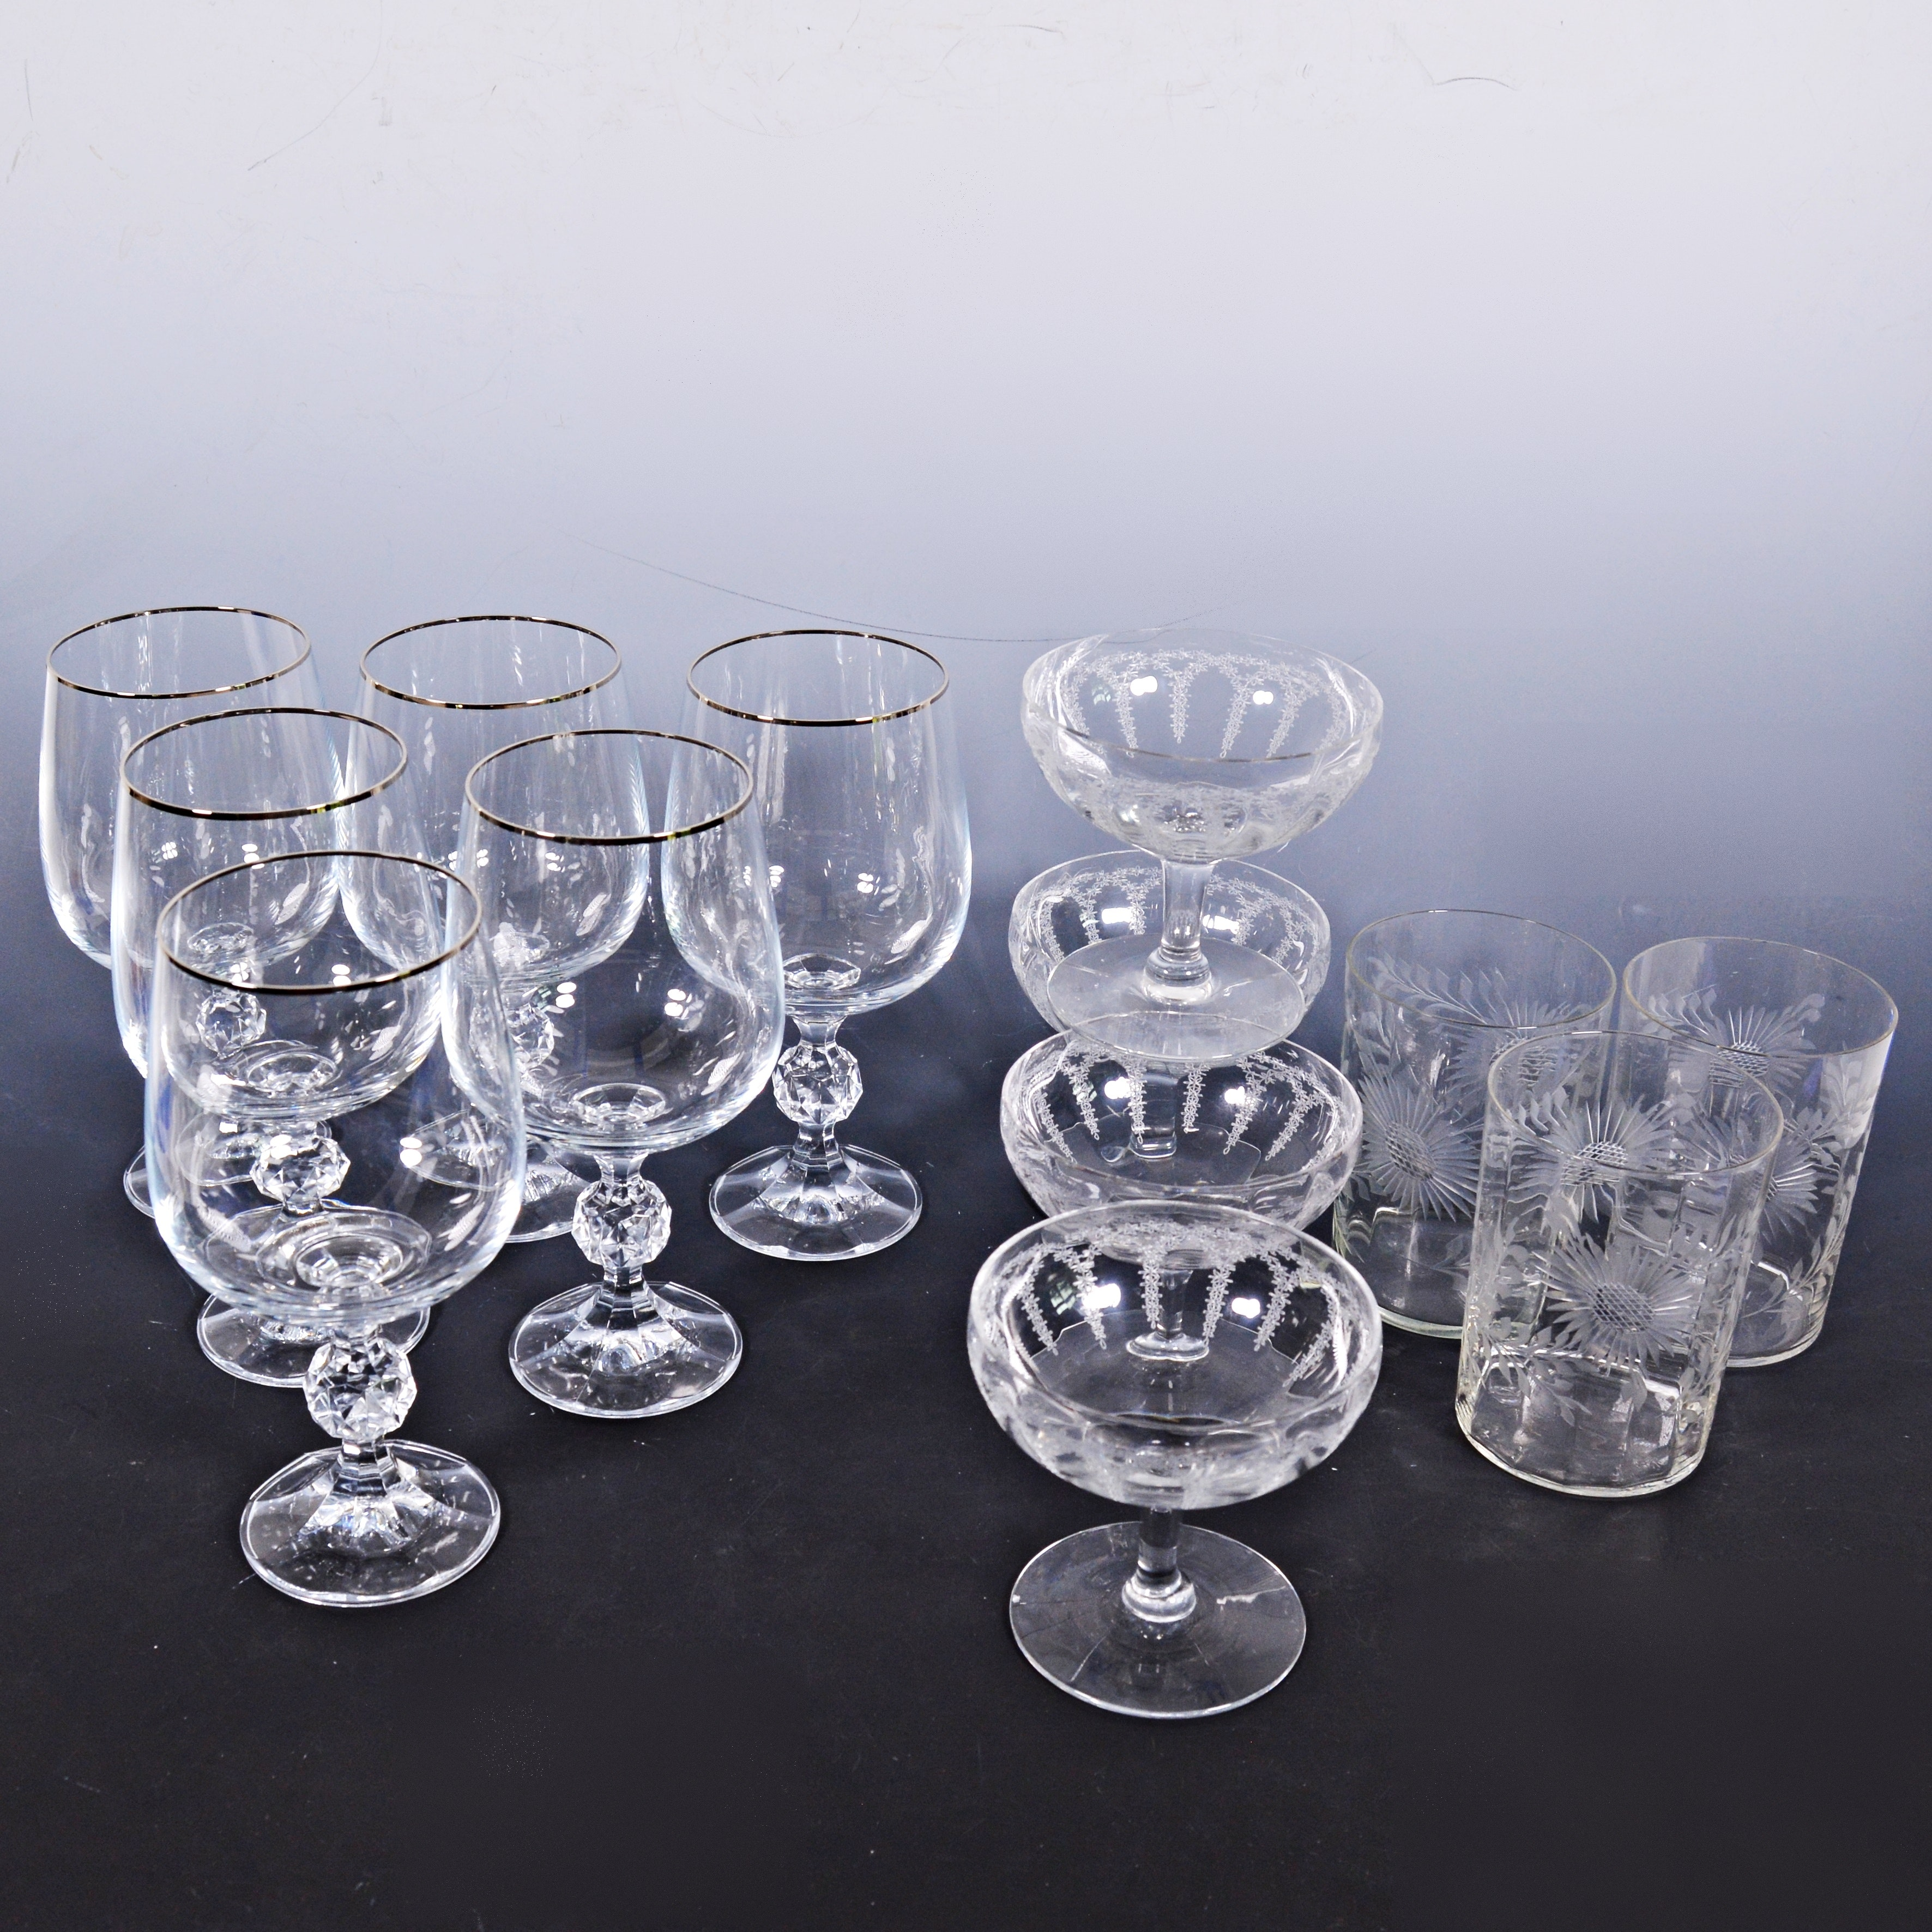 Vintage Etched Glassware with Crystal Stemware